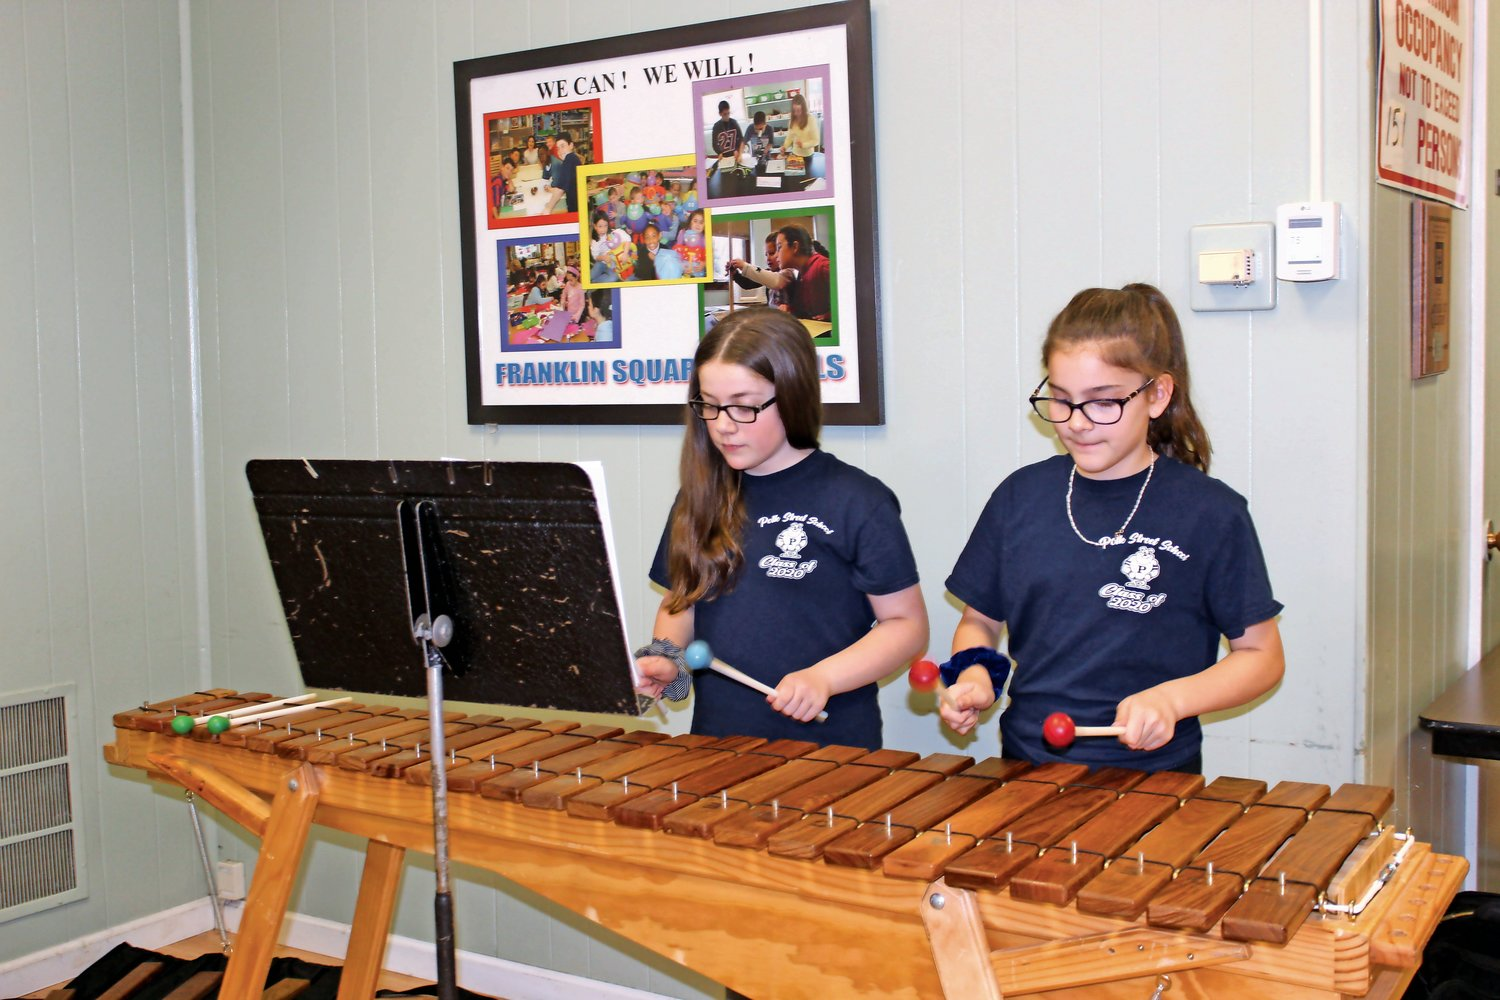 Polk Street sixth-graders Siobhan Knoedler and Victoria Kennedy demonstrated what they have learned on the marimbas.